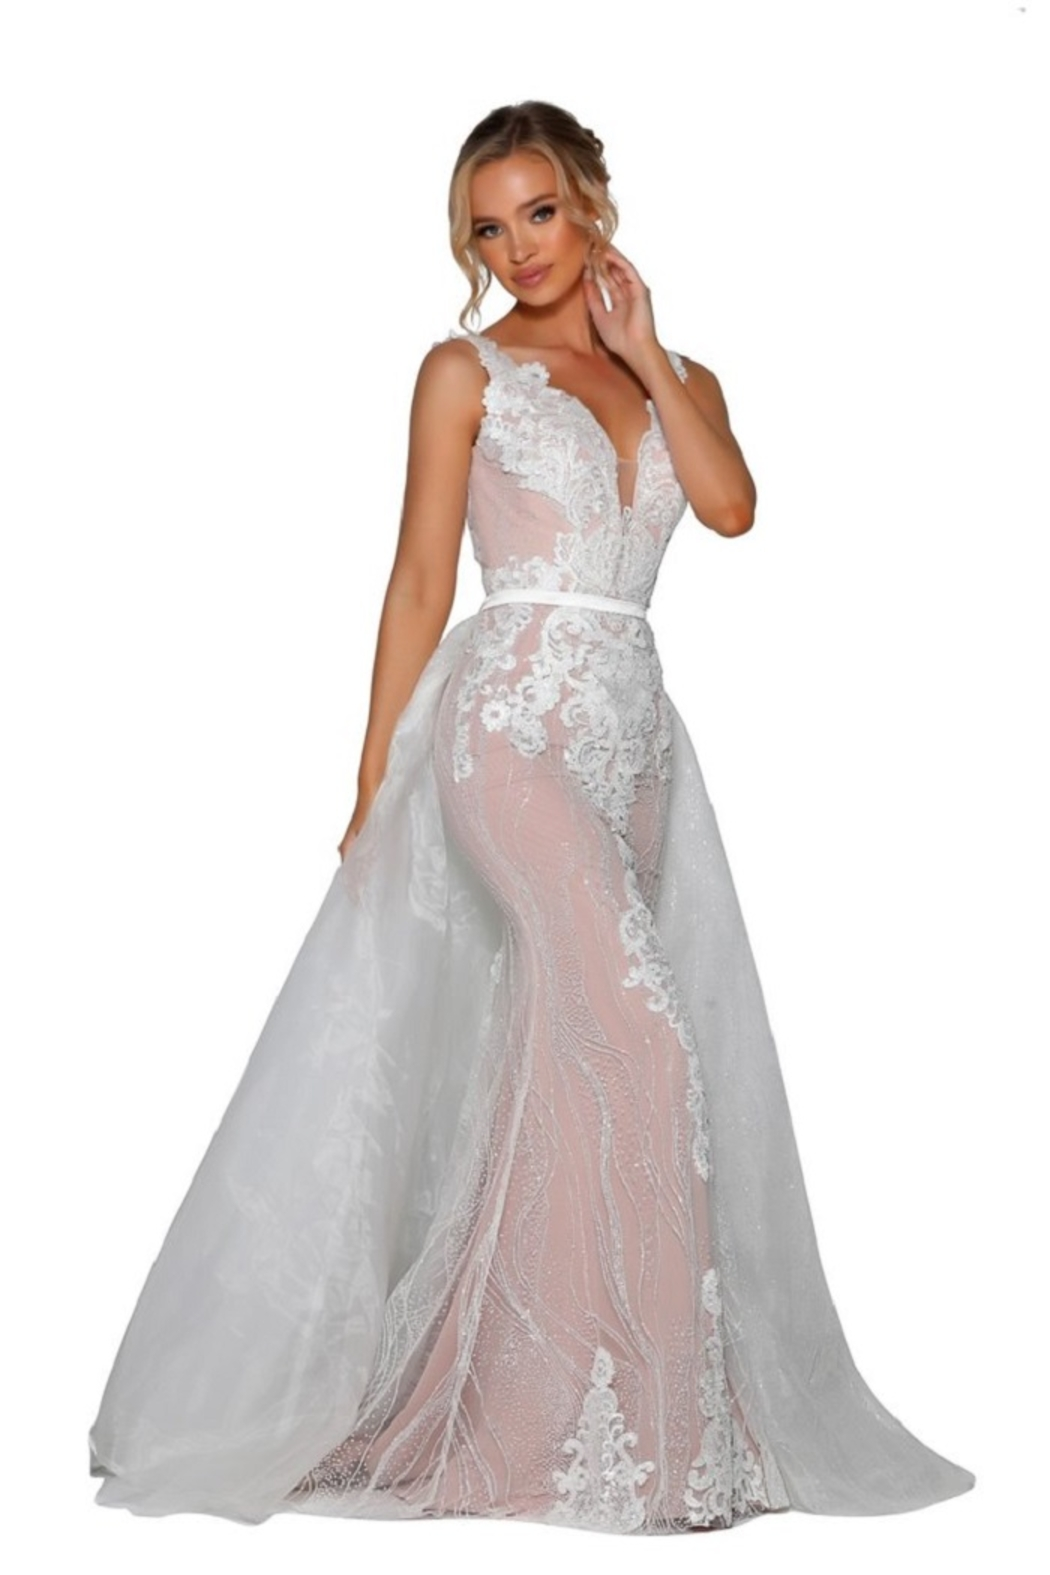 PORTIA AND SCARLETT Ivory & Nude Glitter Lace Bridal Gown With Detachable Train - Side Cropped Image